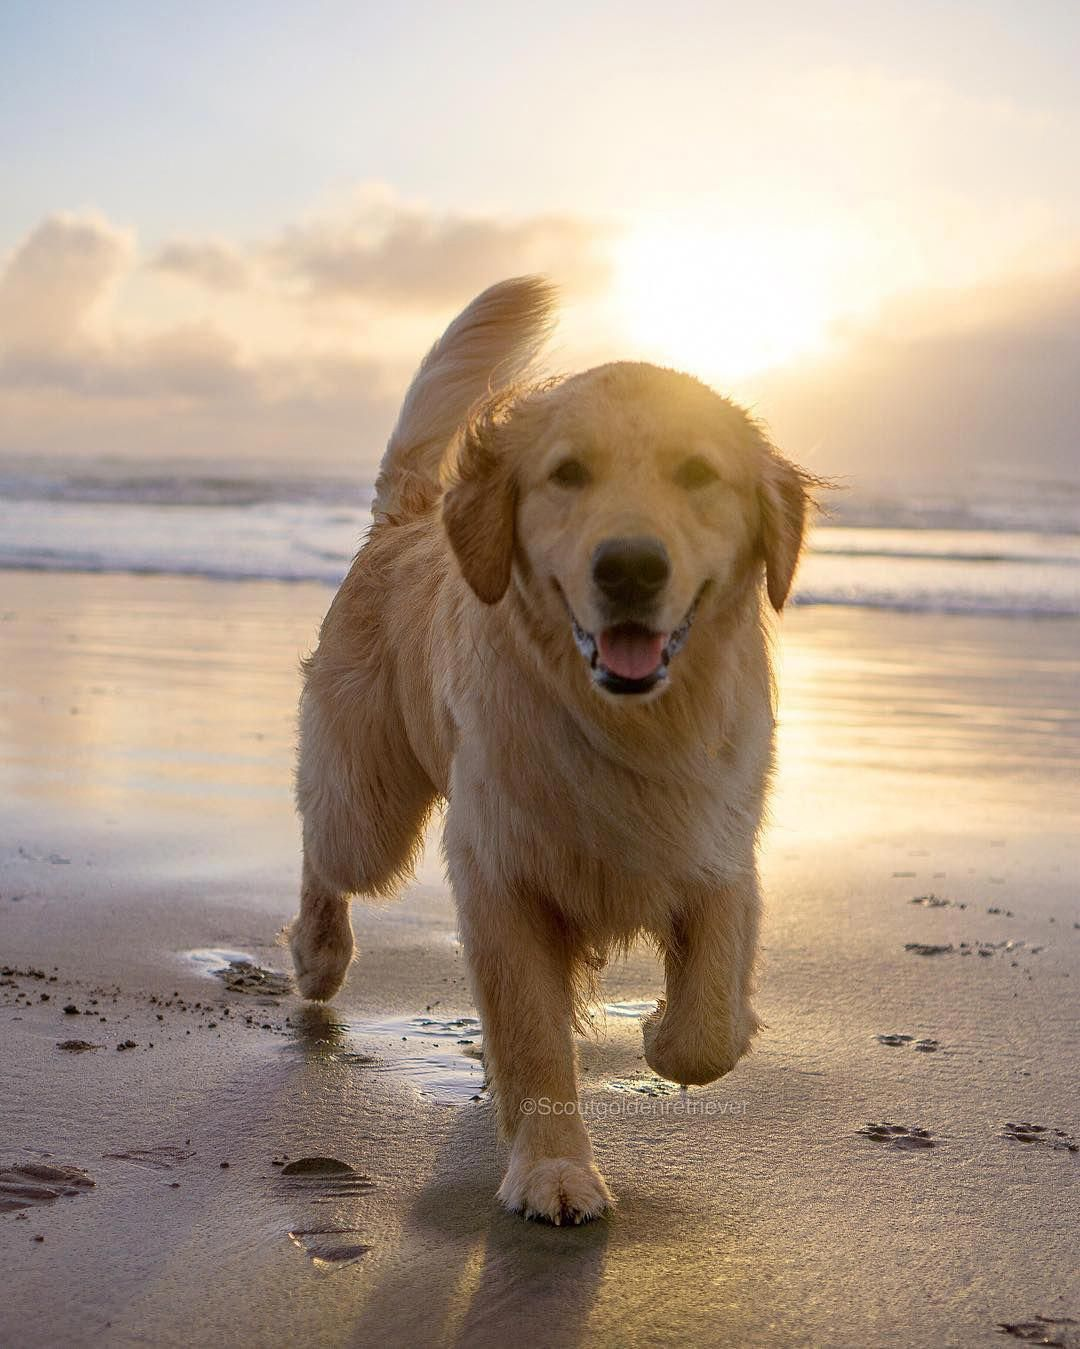 Some Of The Things I Adore About The Trustworthy Golden Retr Some Of The Things I Adore About The Trustwo In 2020 Golden Retriever Dog Beach Golden Retriever Facts